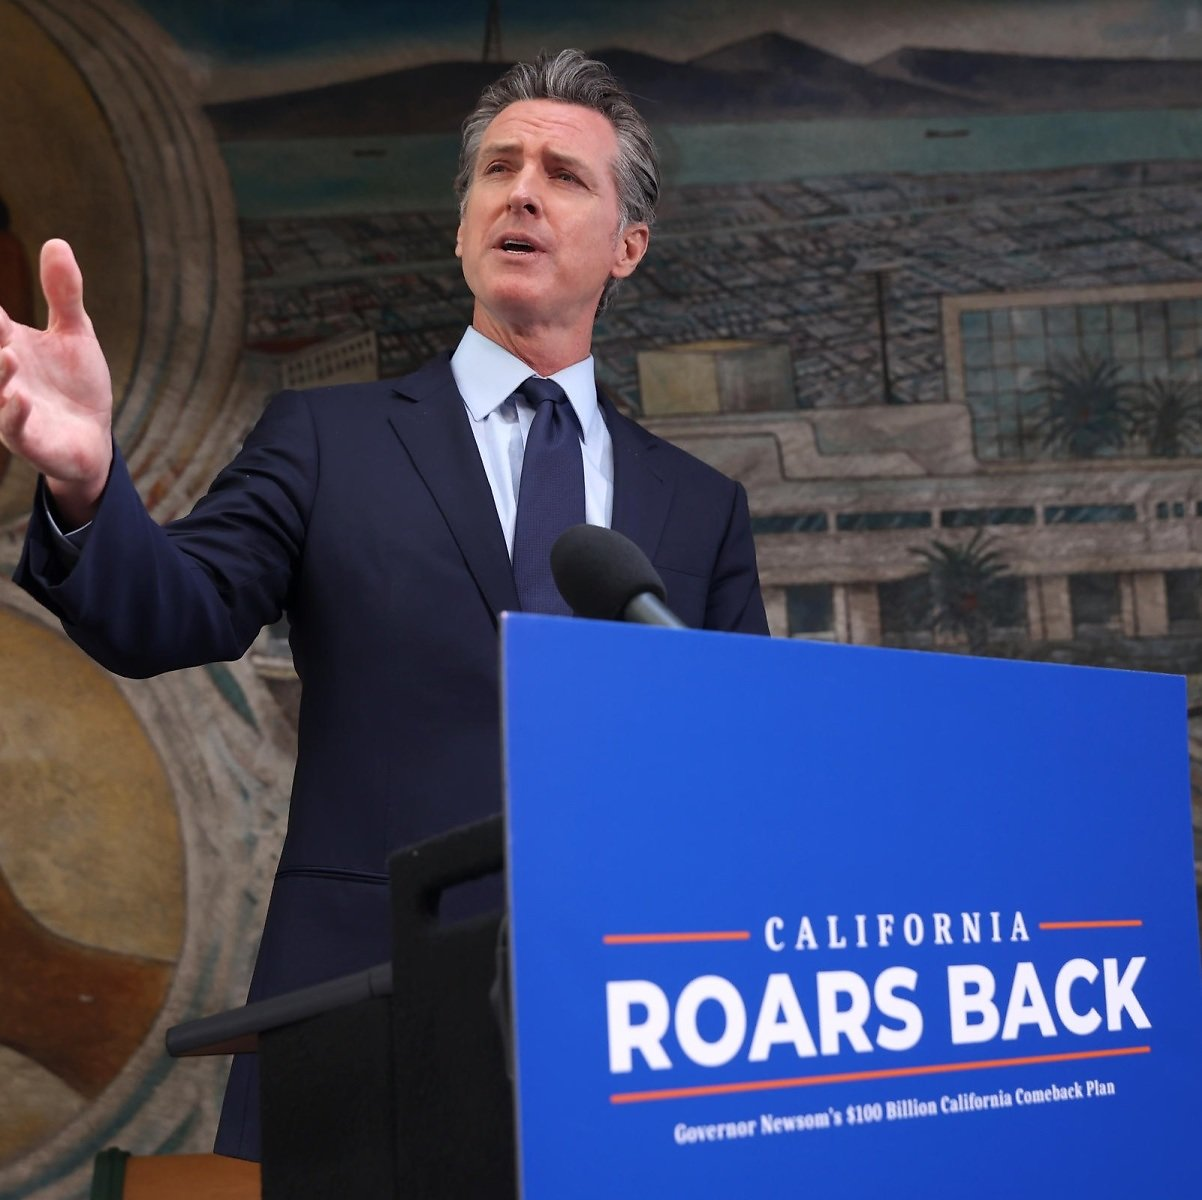 Newsom Proposes New $600 Stimulus Plan for California Residents